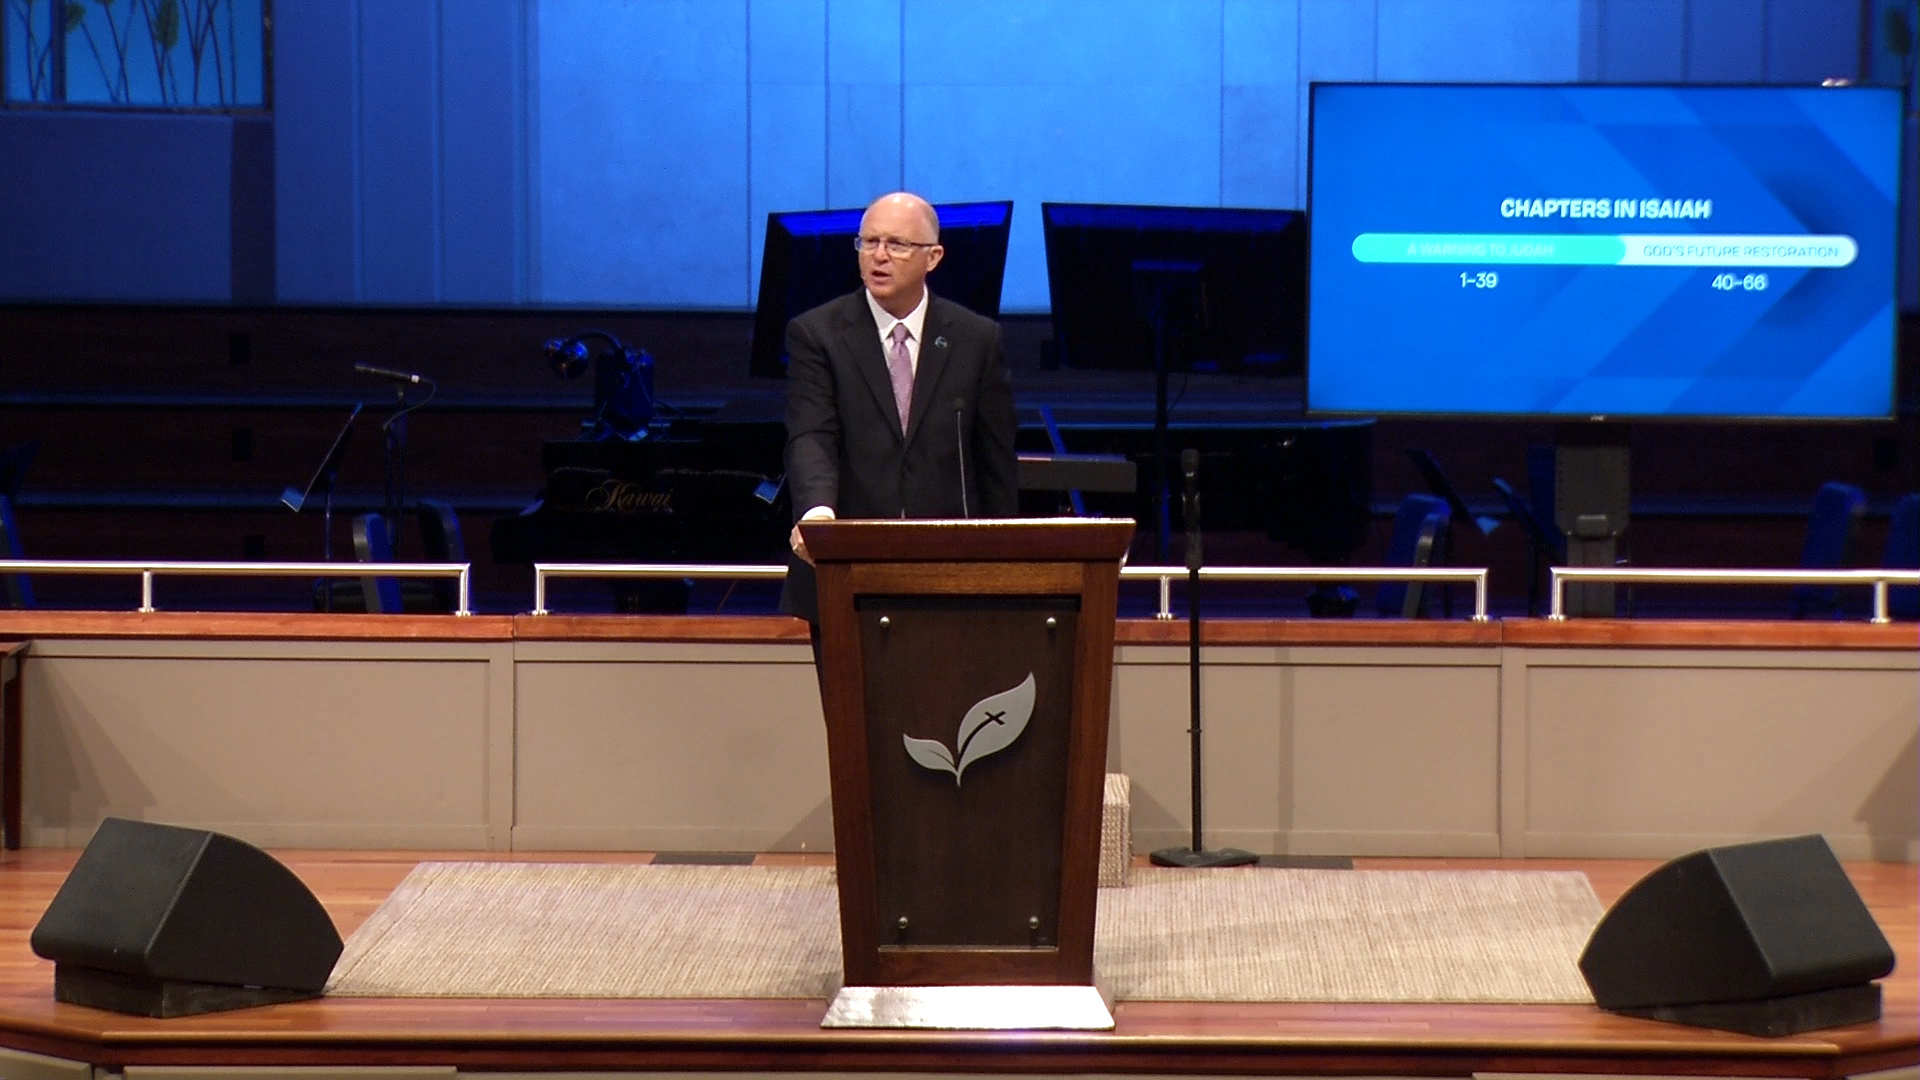 Pastor Paul Chappell: Reaching Forth in Patience